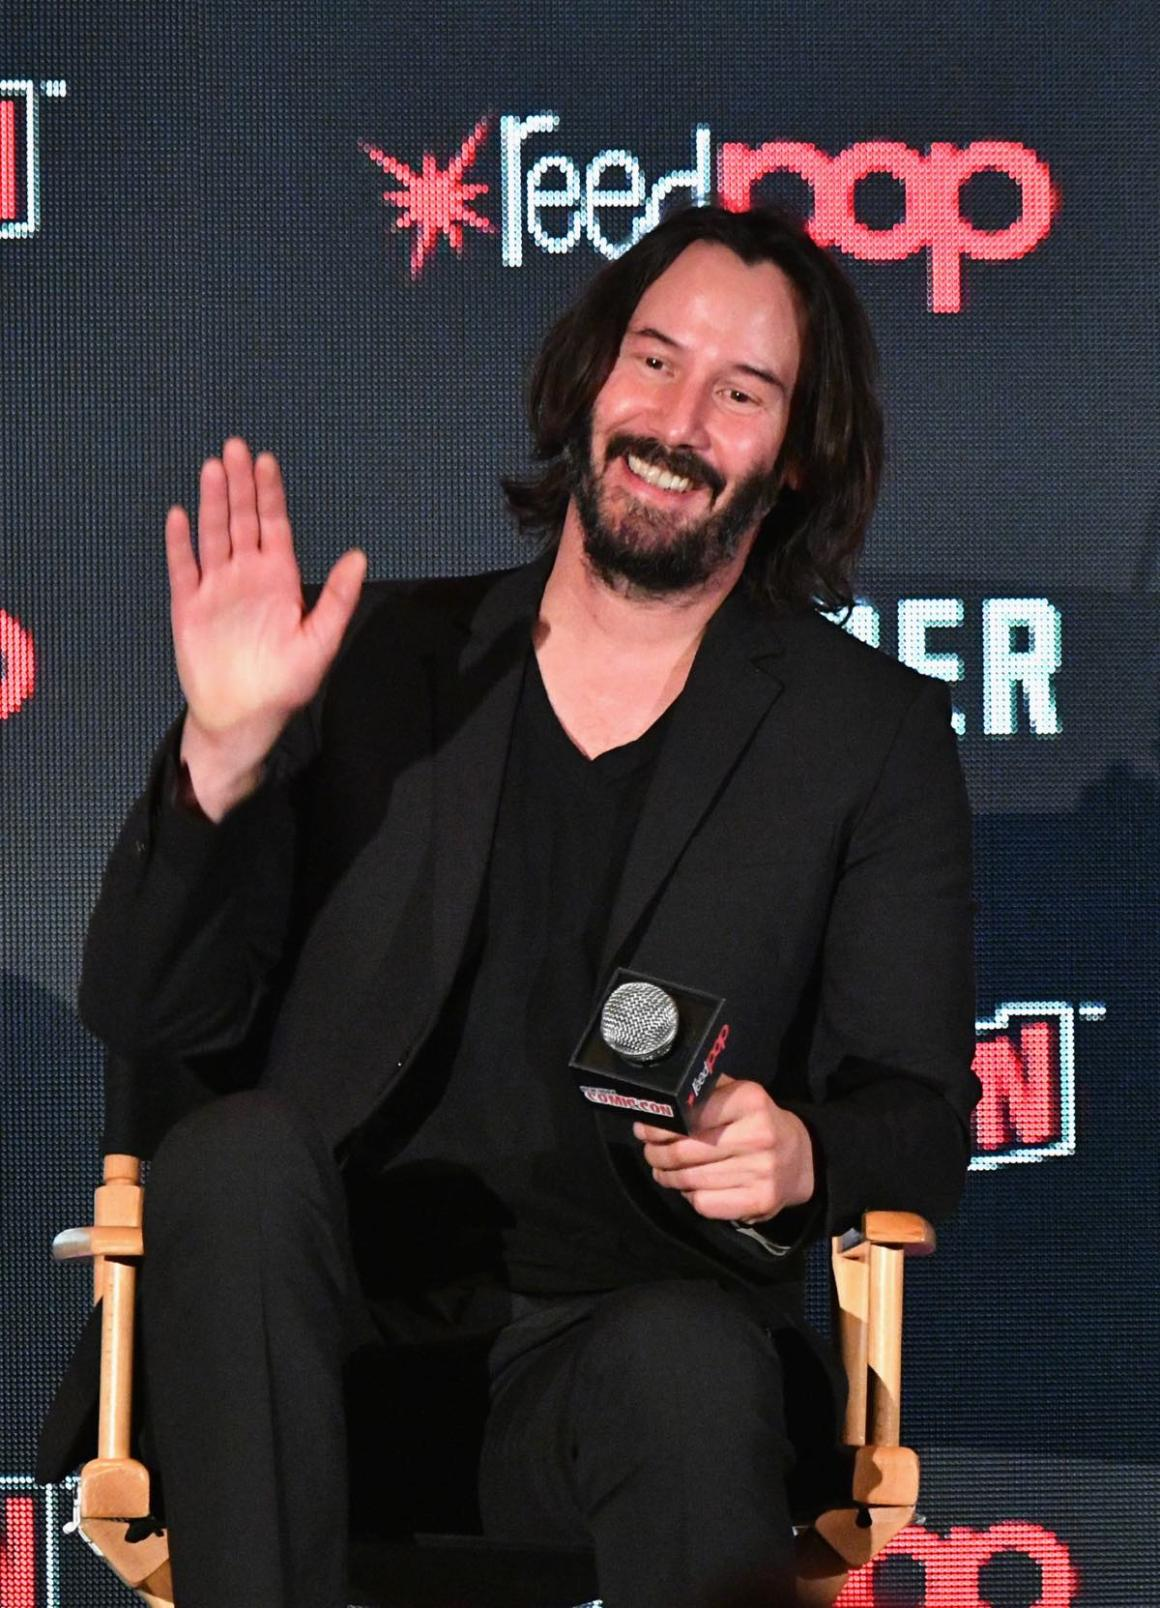 Keanu Reeves at 2017 New York Comic Con - Day 1